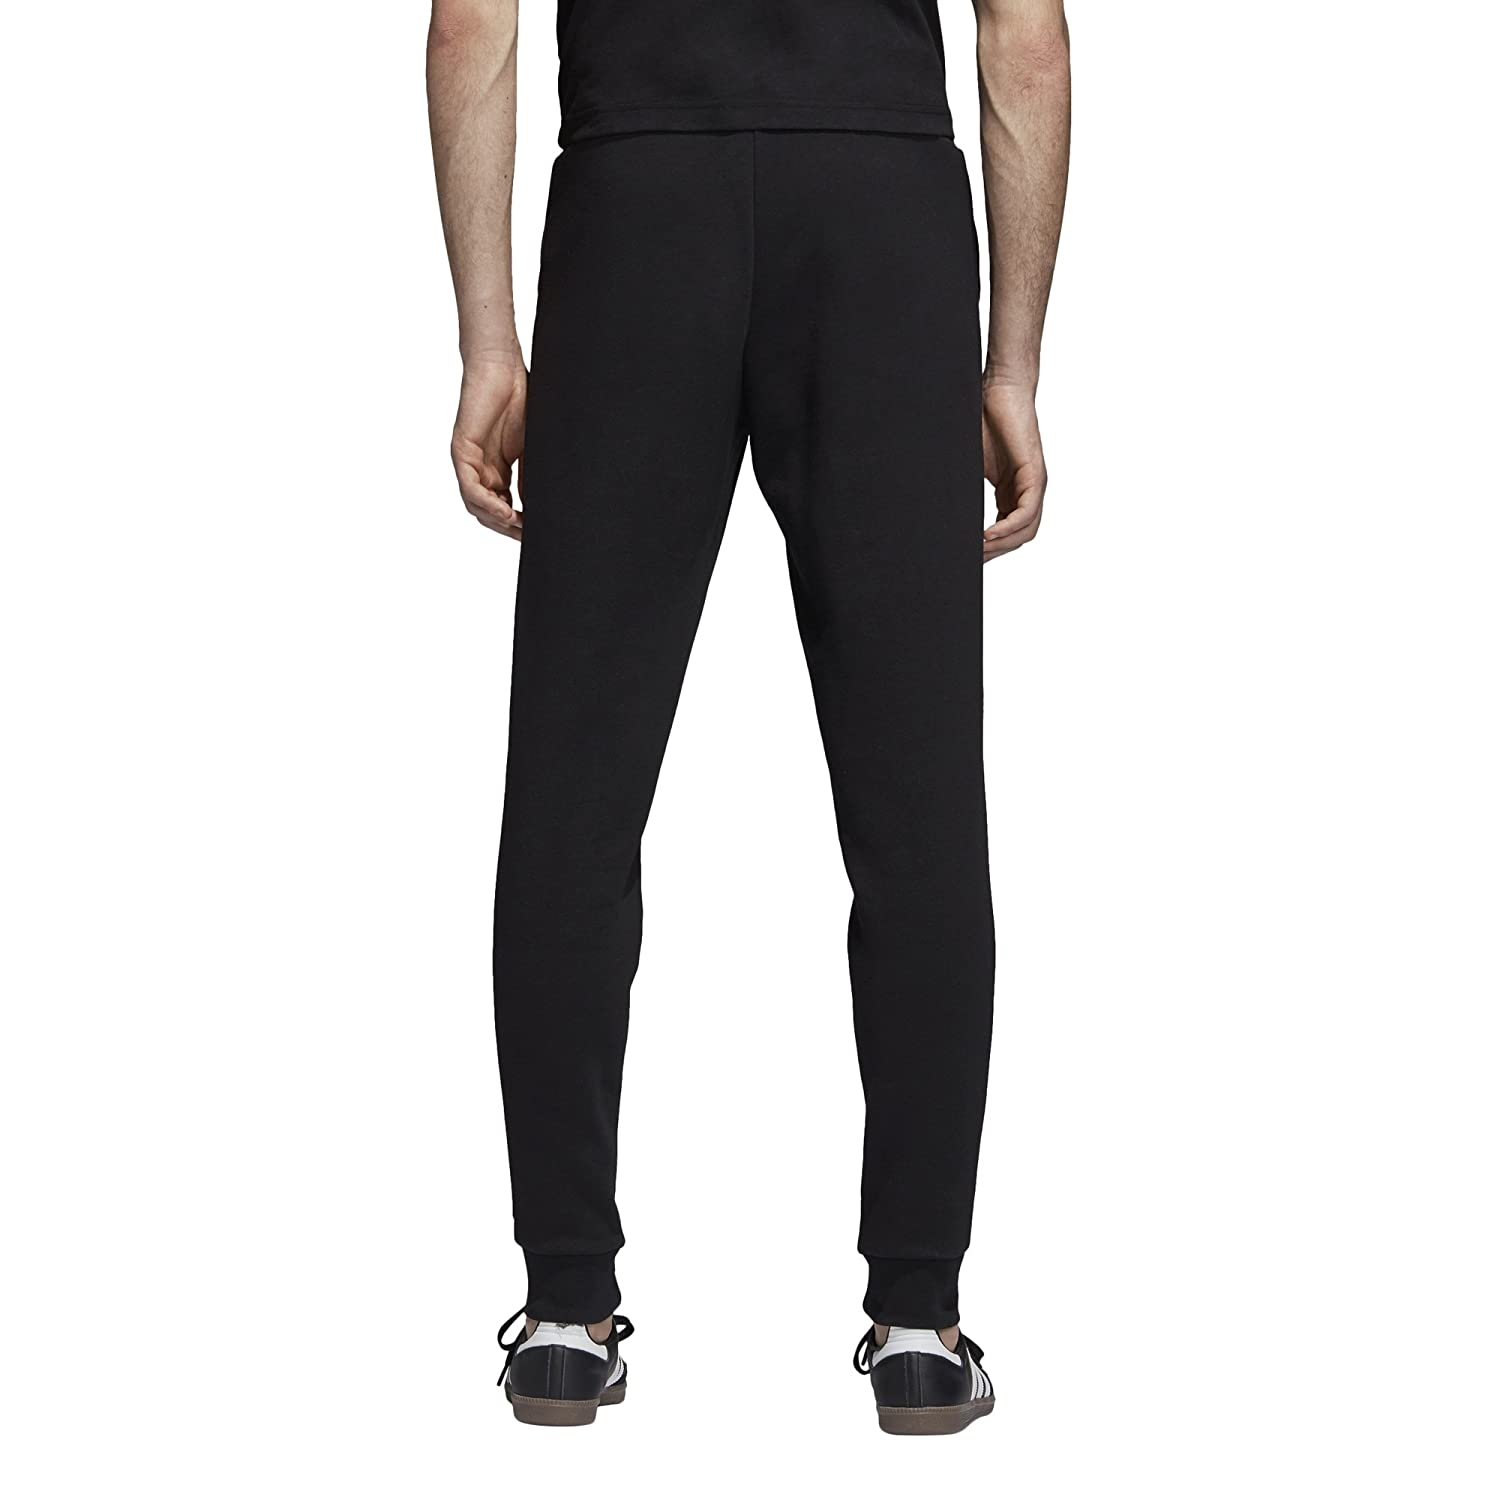 7f2aec2729e35 Mens Adidas Pants Amazon